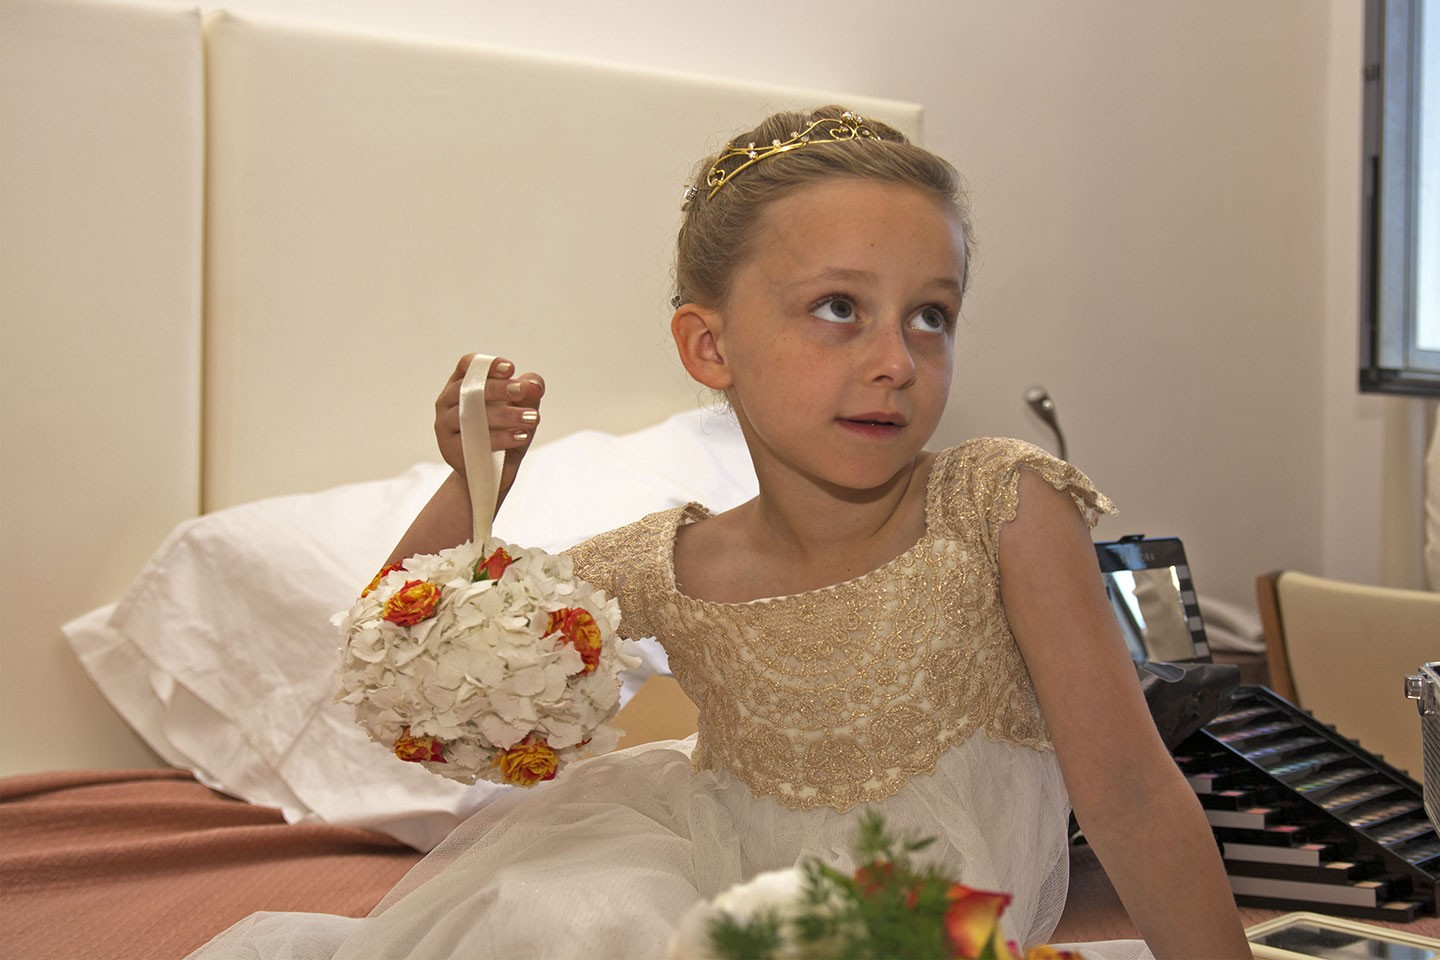 SorrentoWeddingPhoto_FineArtStudio_Hotels_Details_Flower_Girl